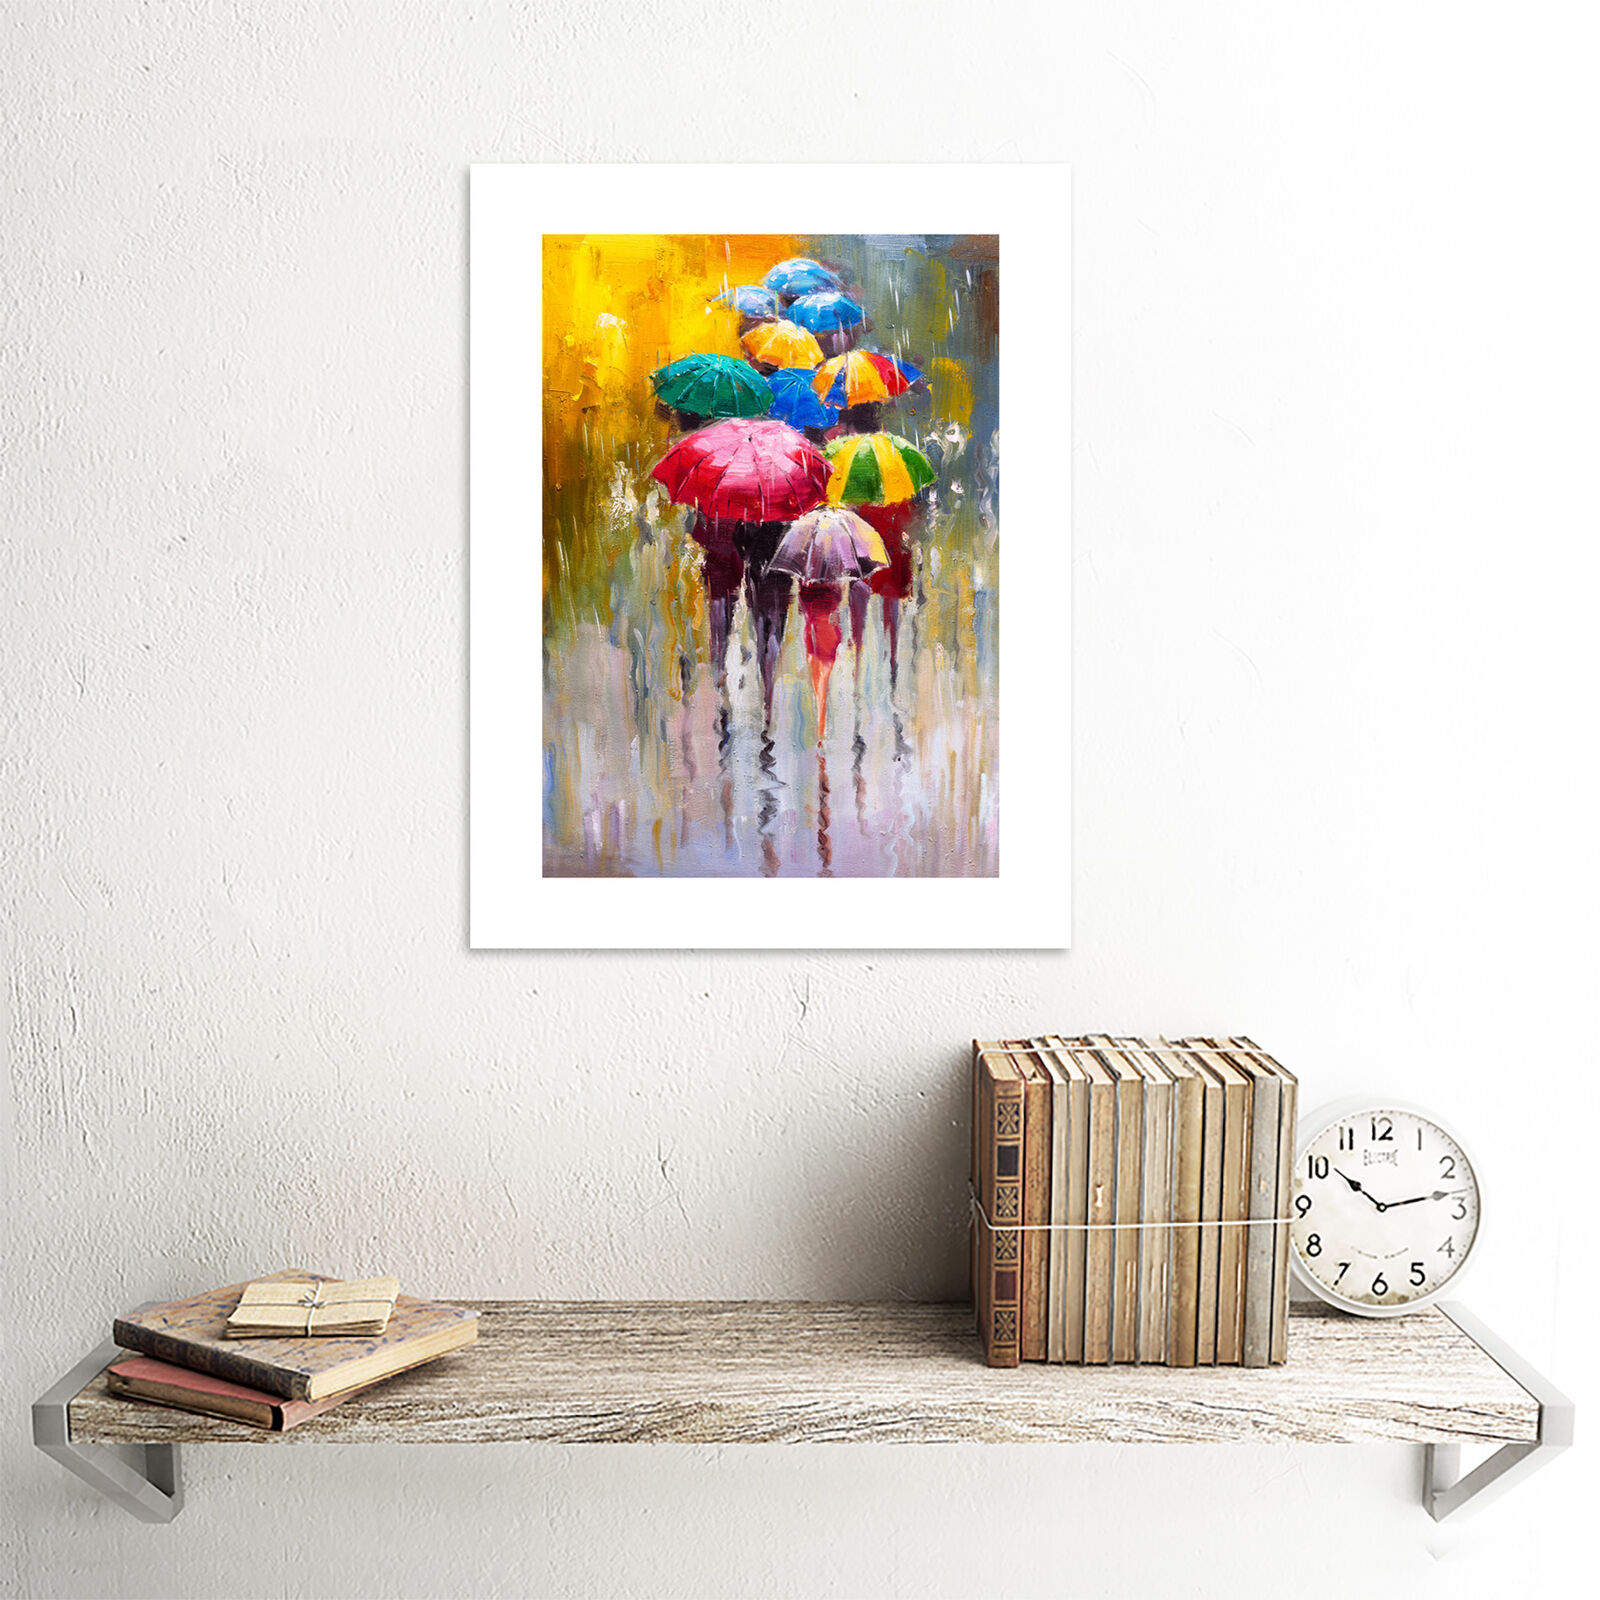 PAINTING DANCING IN THE RAIN PRINT Canvas Wall Art Picture AB562 MATAGA .